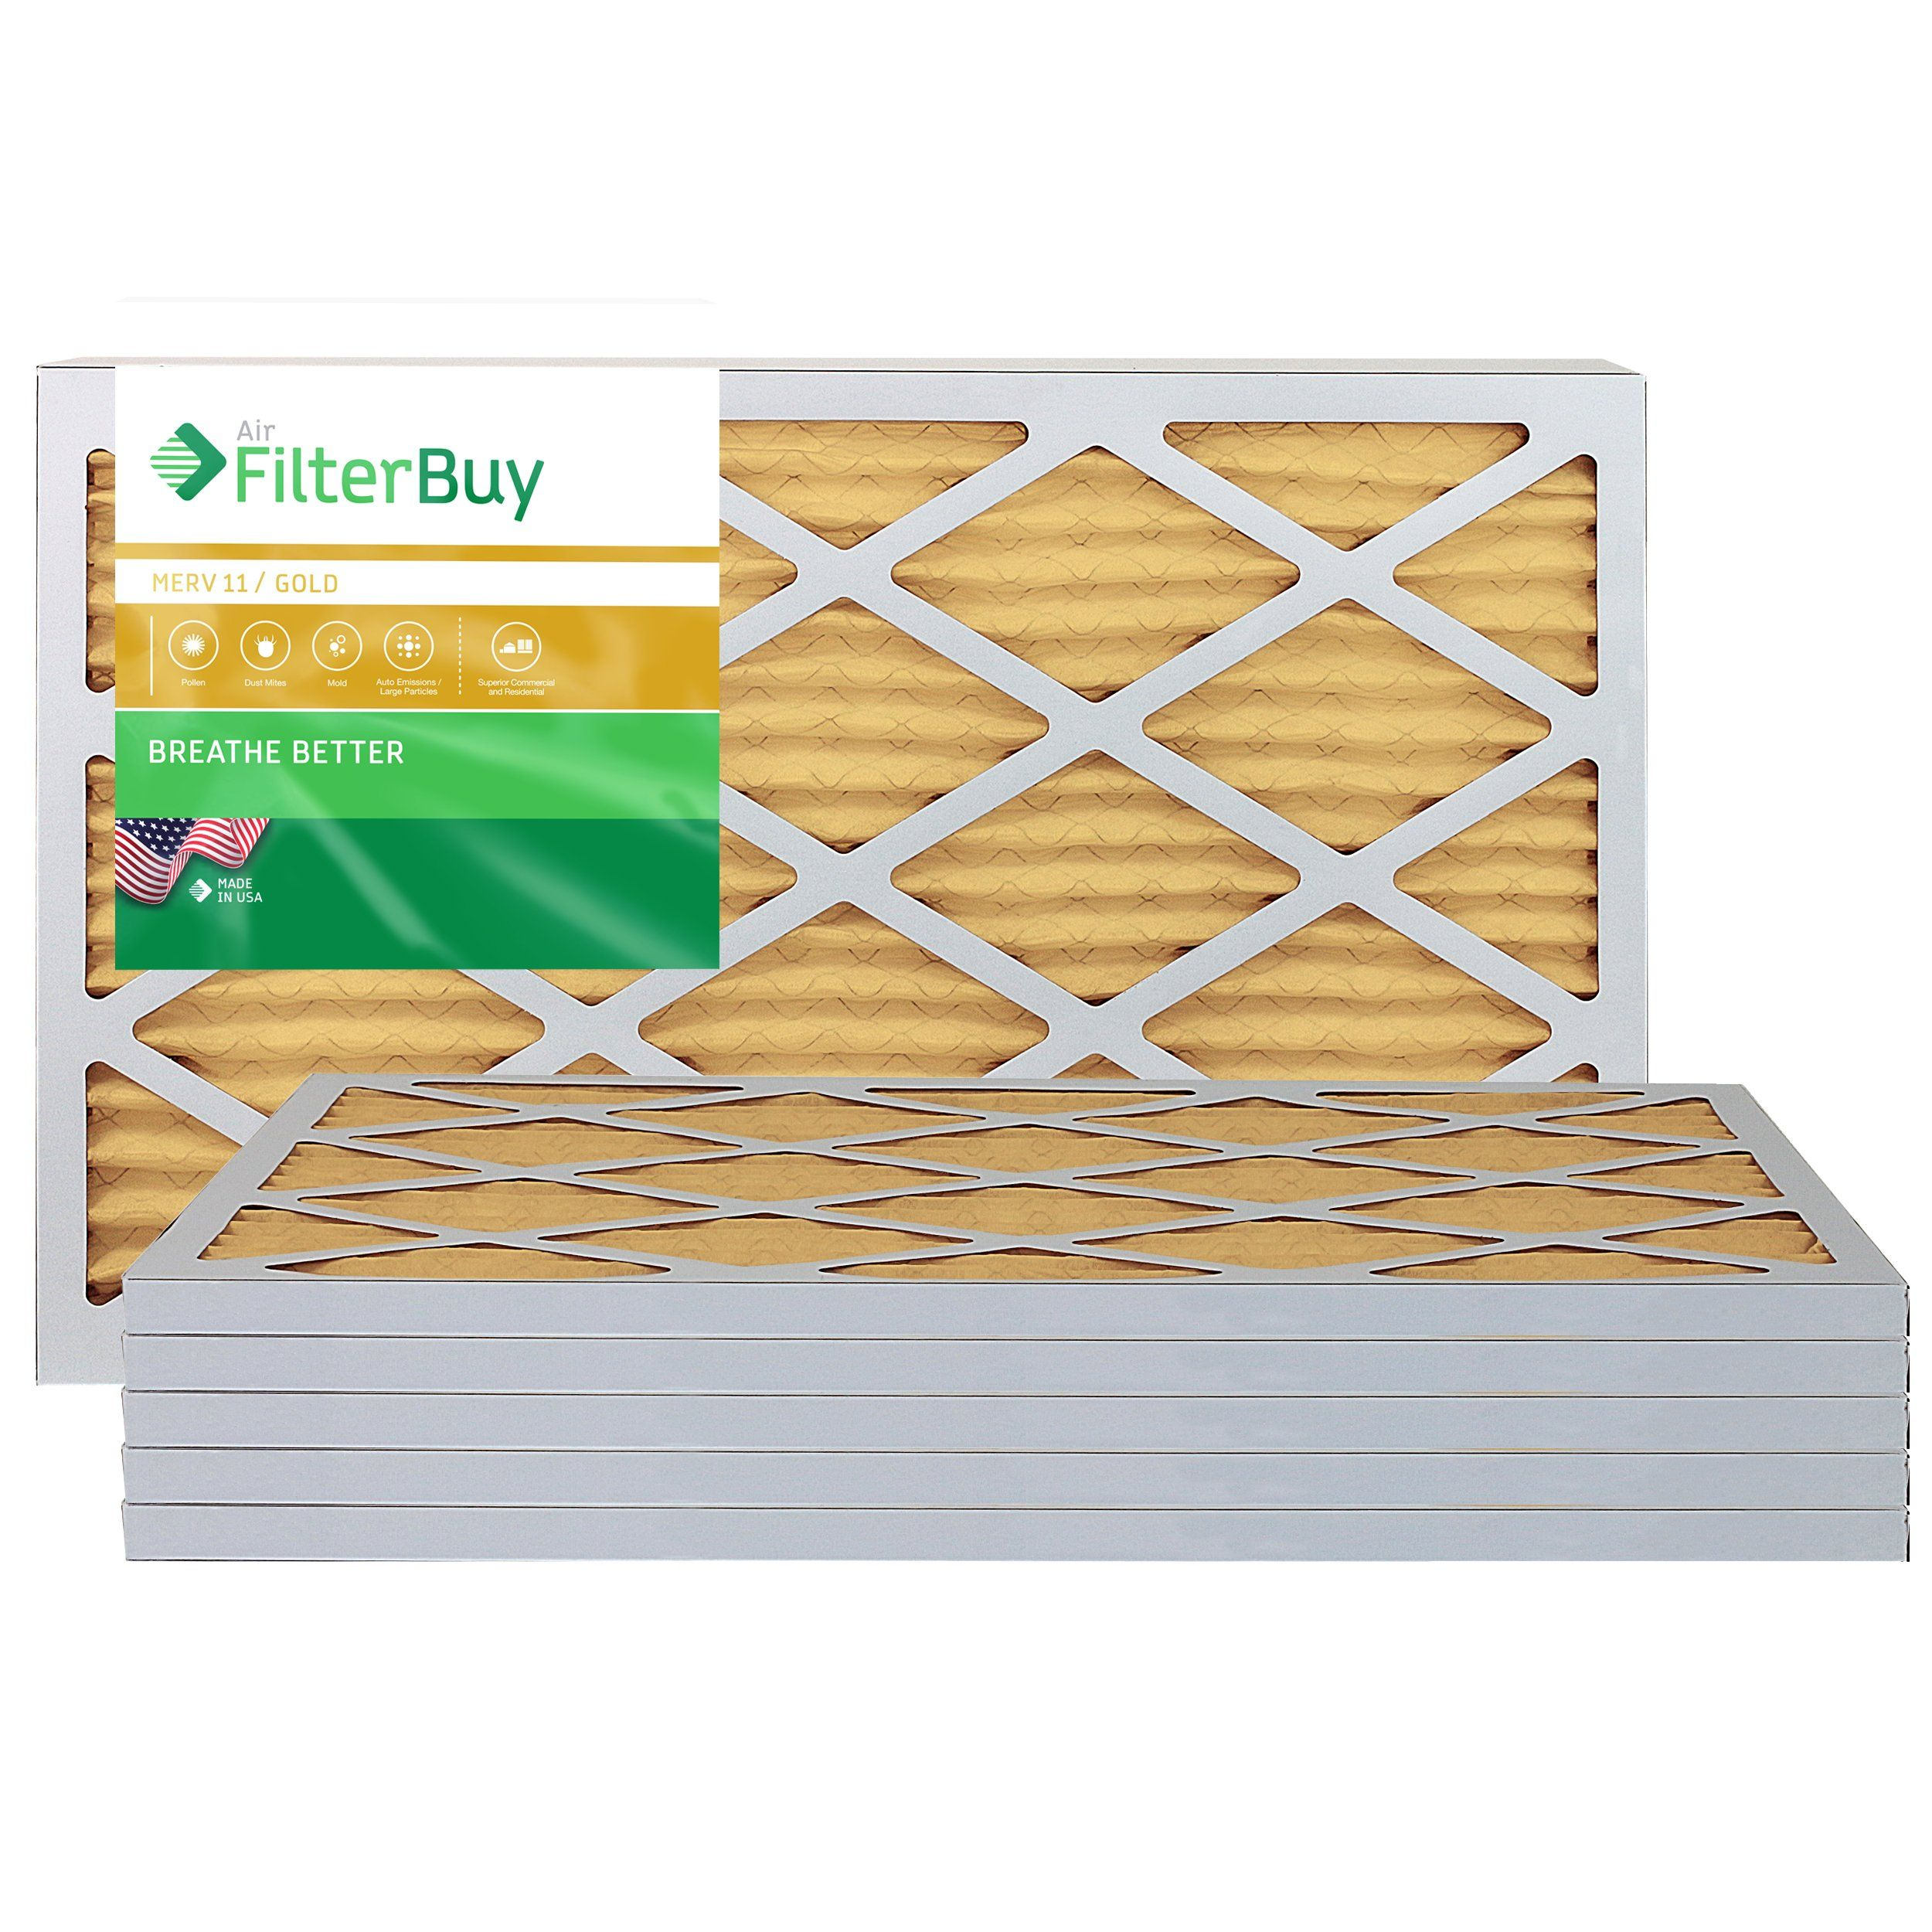 FilterBuy AFB Gold MERV 11 16x25x1 Pleated AC Furnace Air